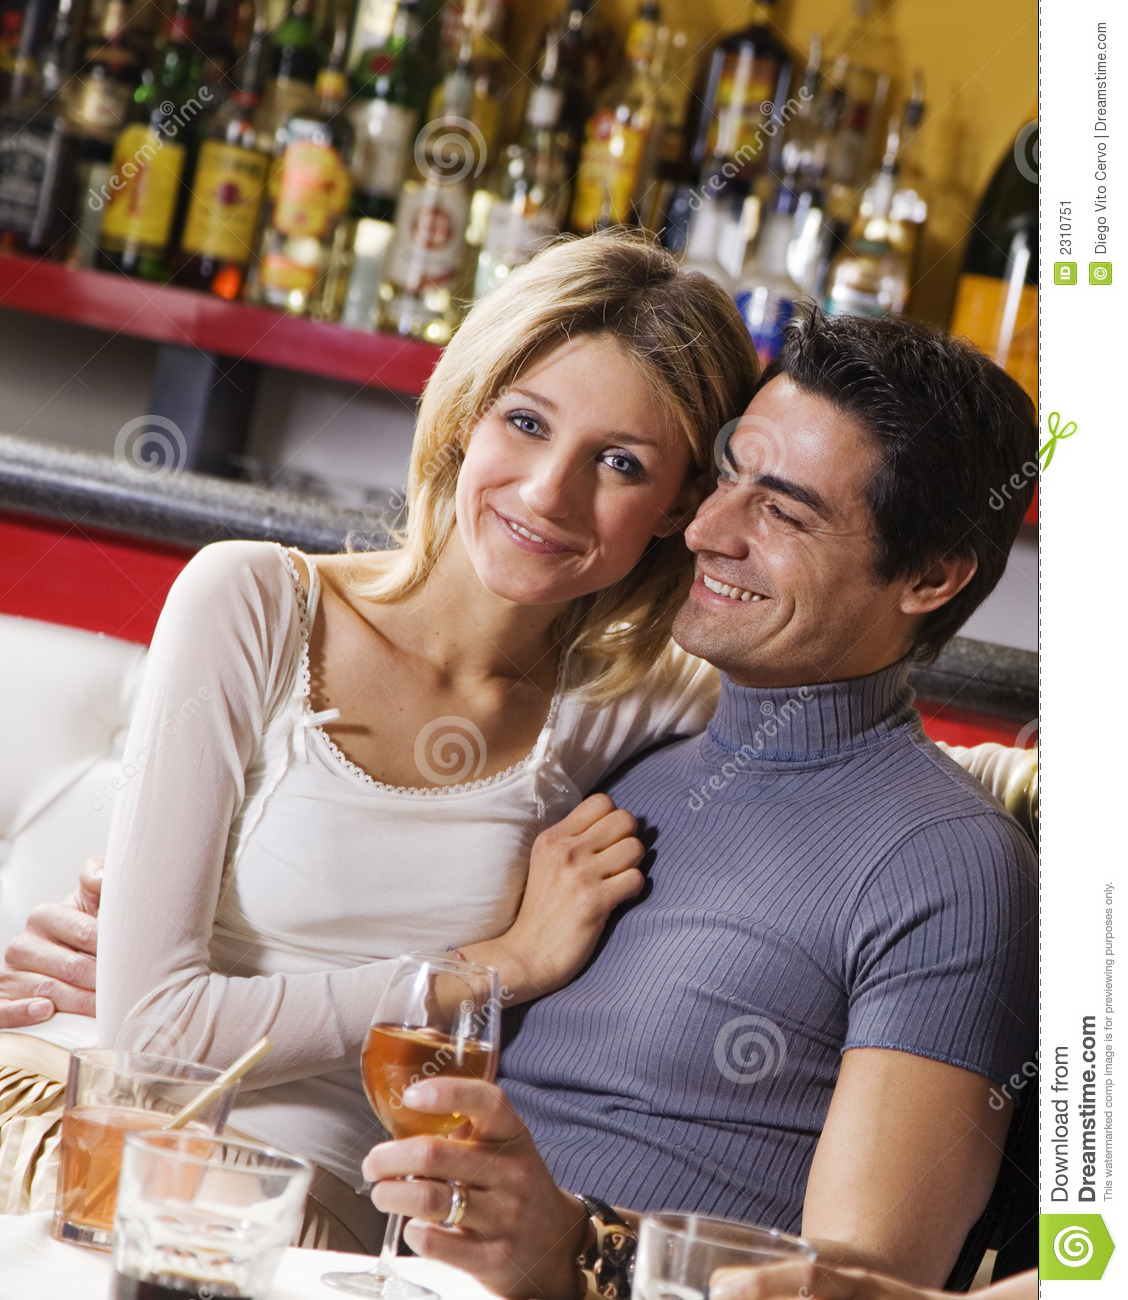 Couple Having Fun Together Stock Image Image Of Cheerful